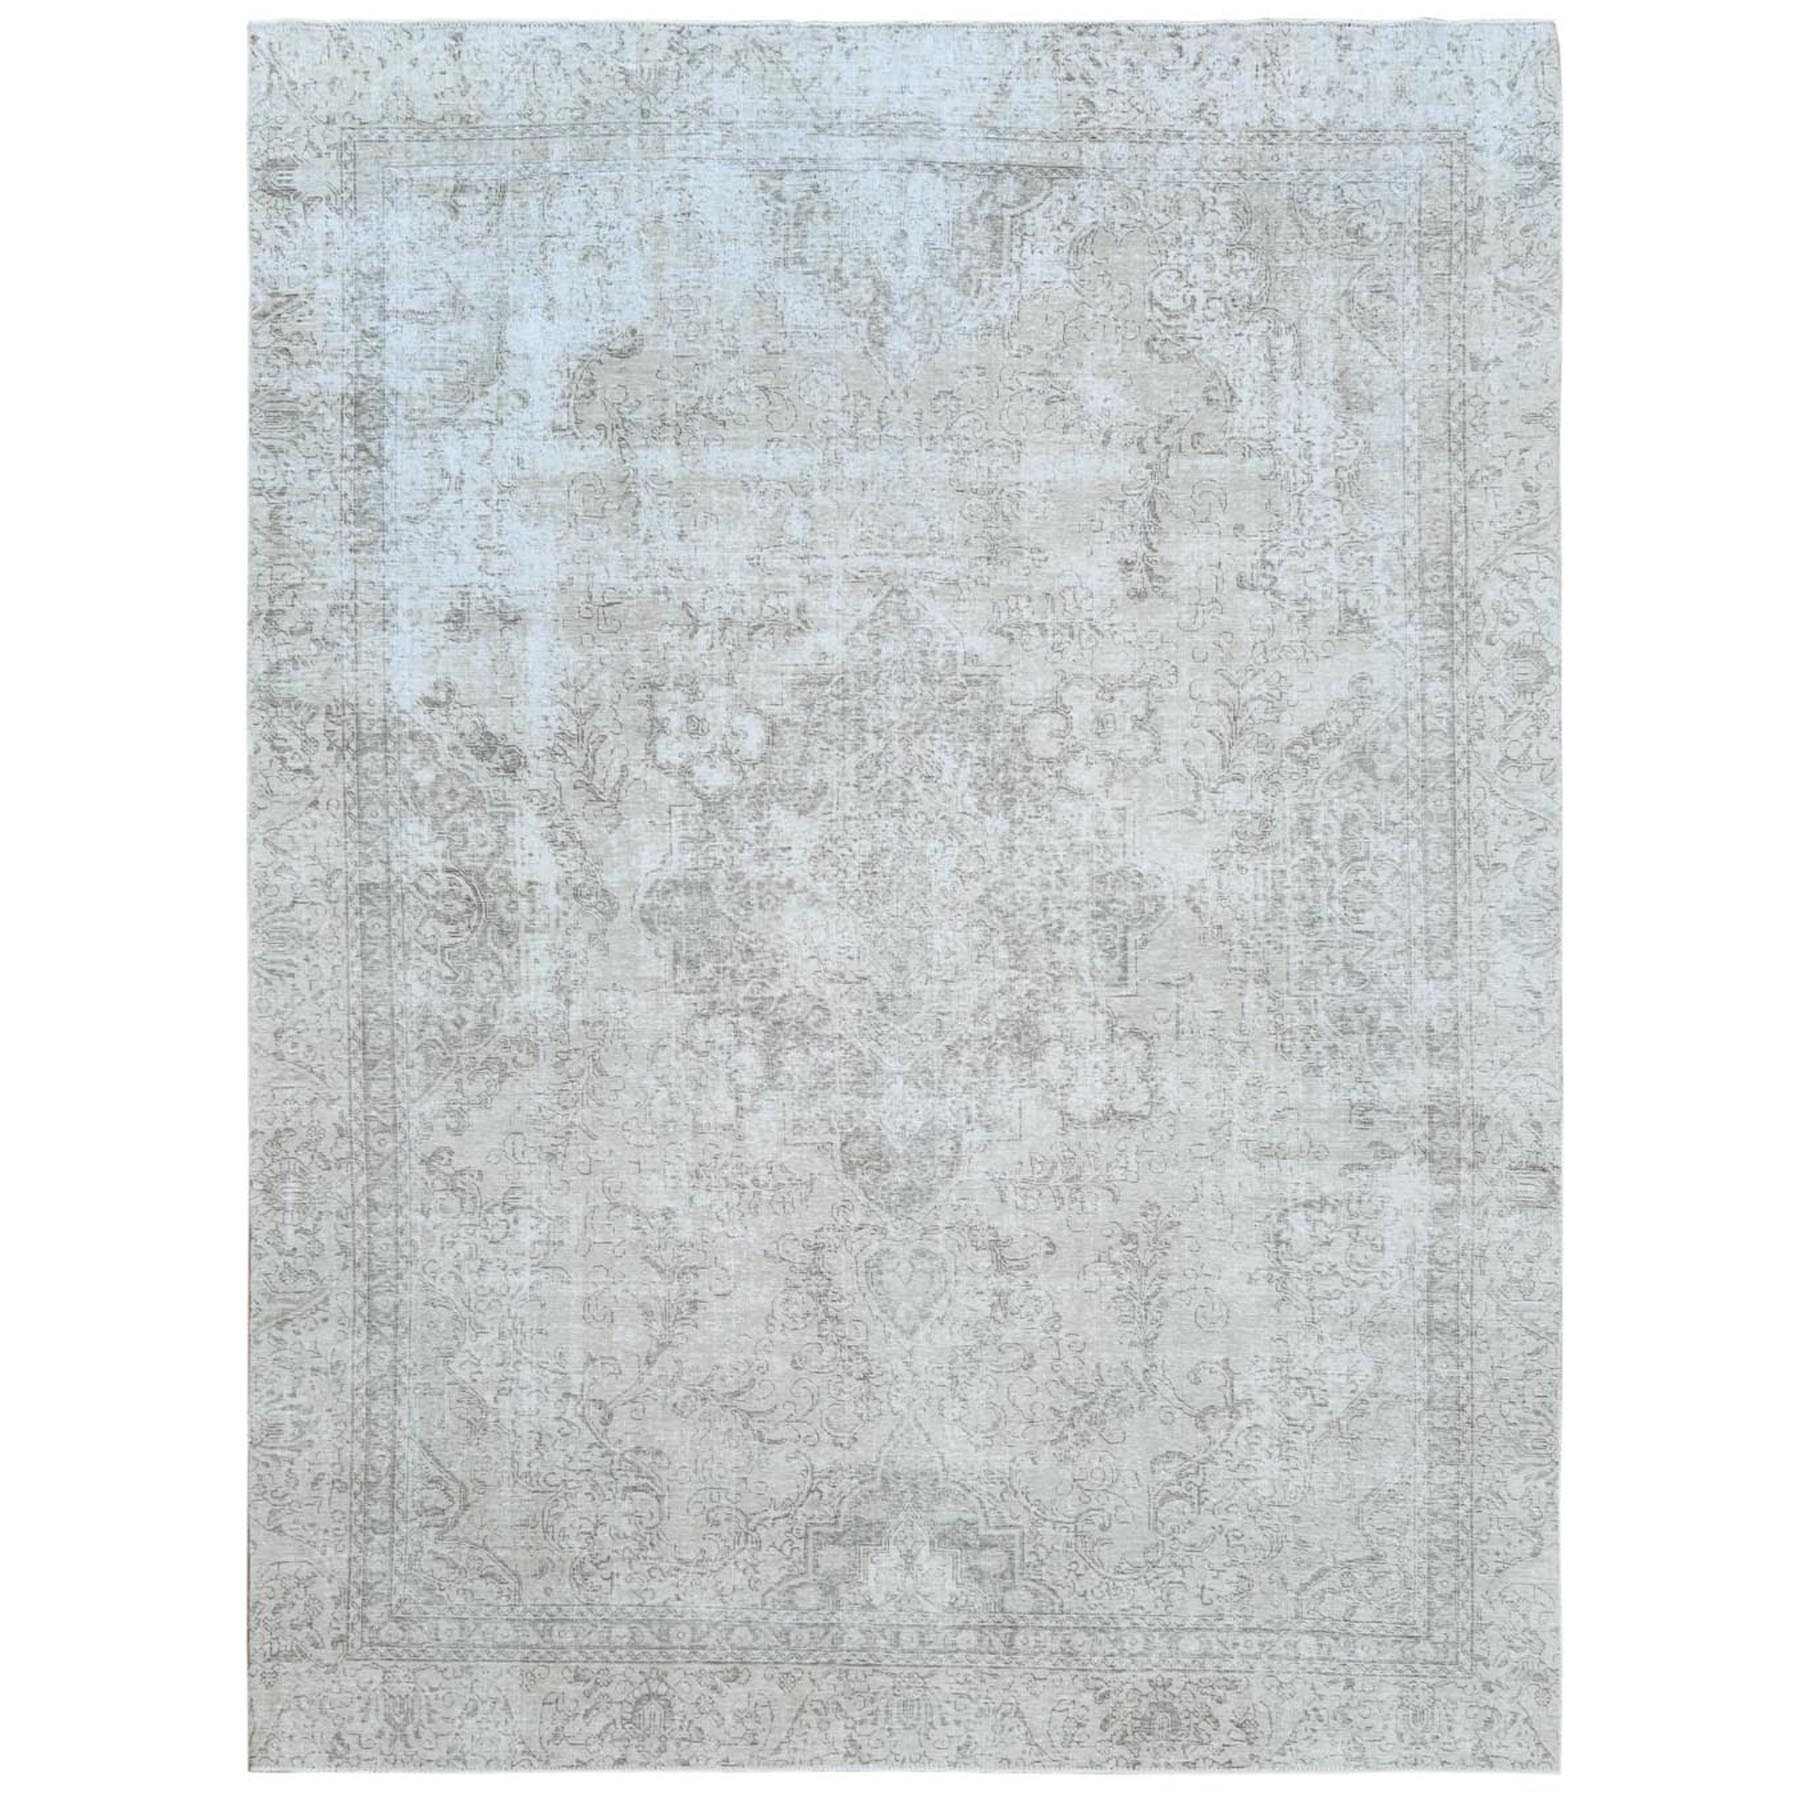 """9'x12'3"""" Semi Antique Ivory Persian Tabriz Worn Down Shabby Chic Hand Knotted Natural Wool Oriental Rug"""